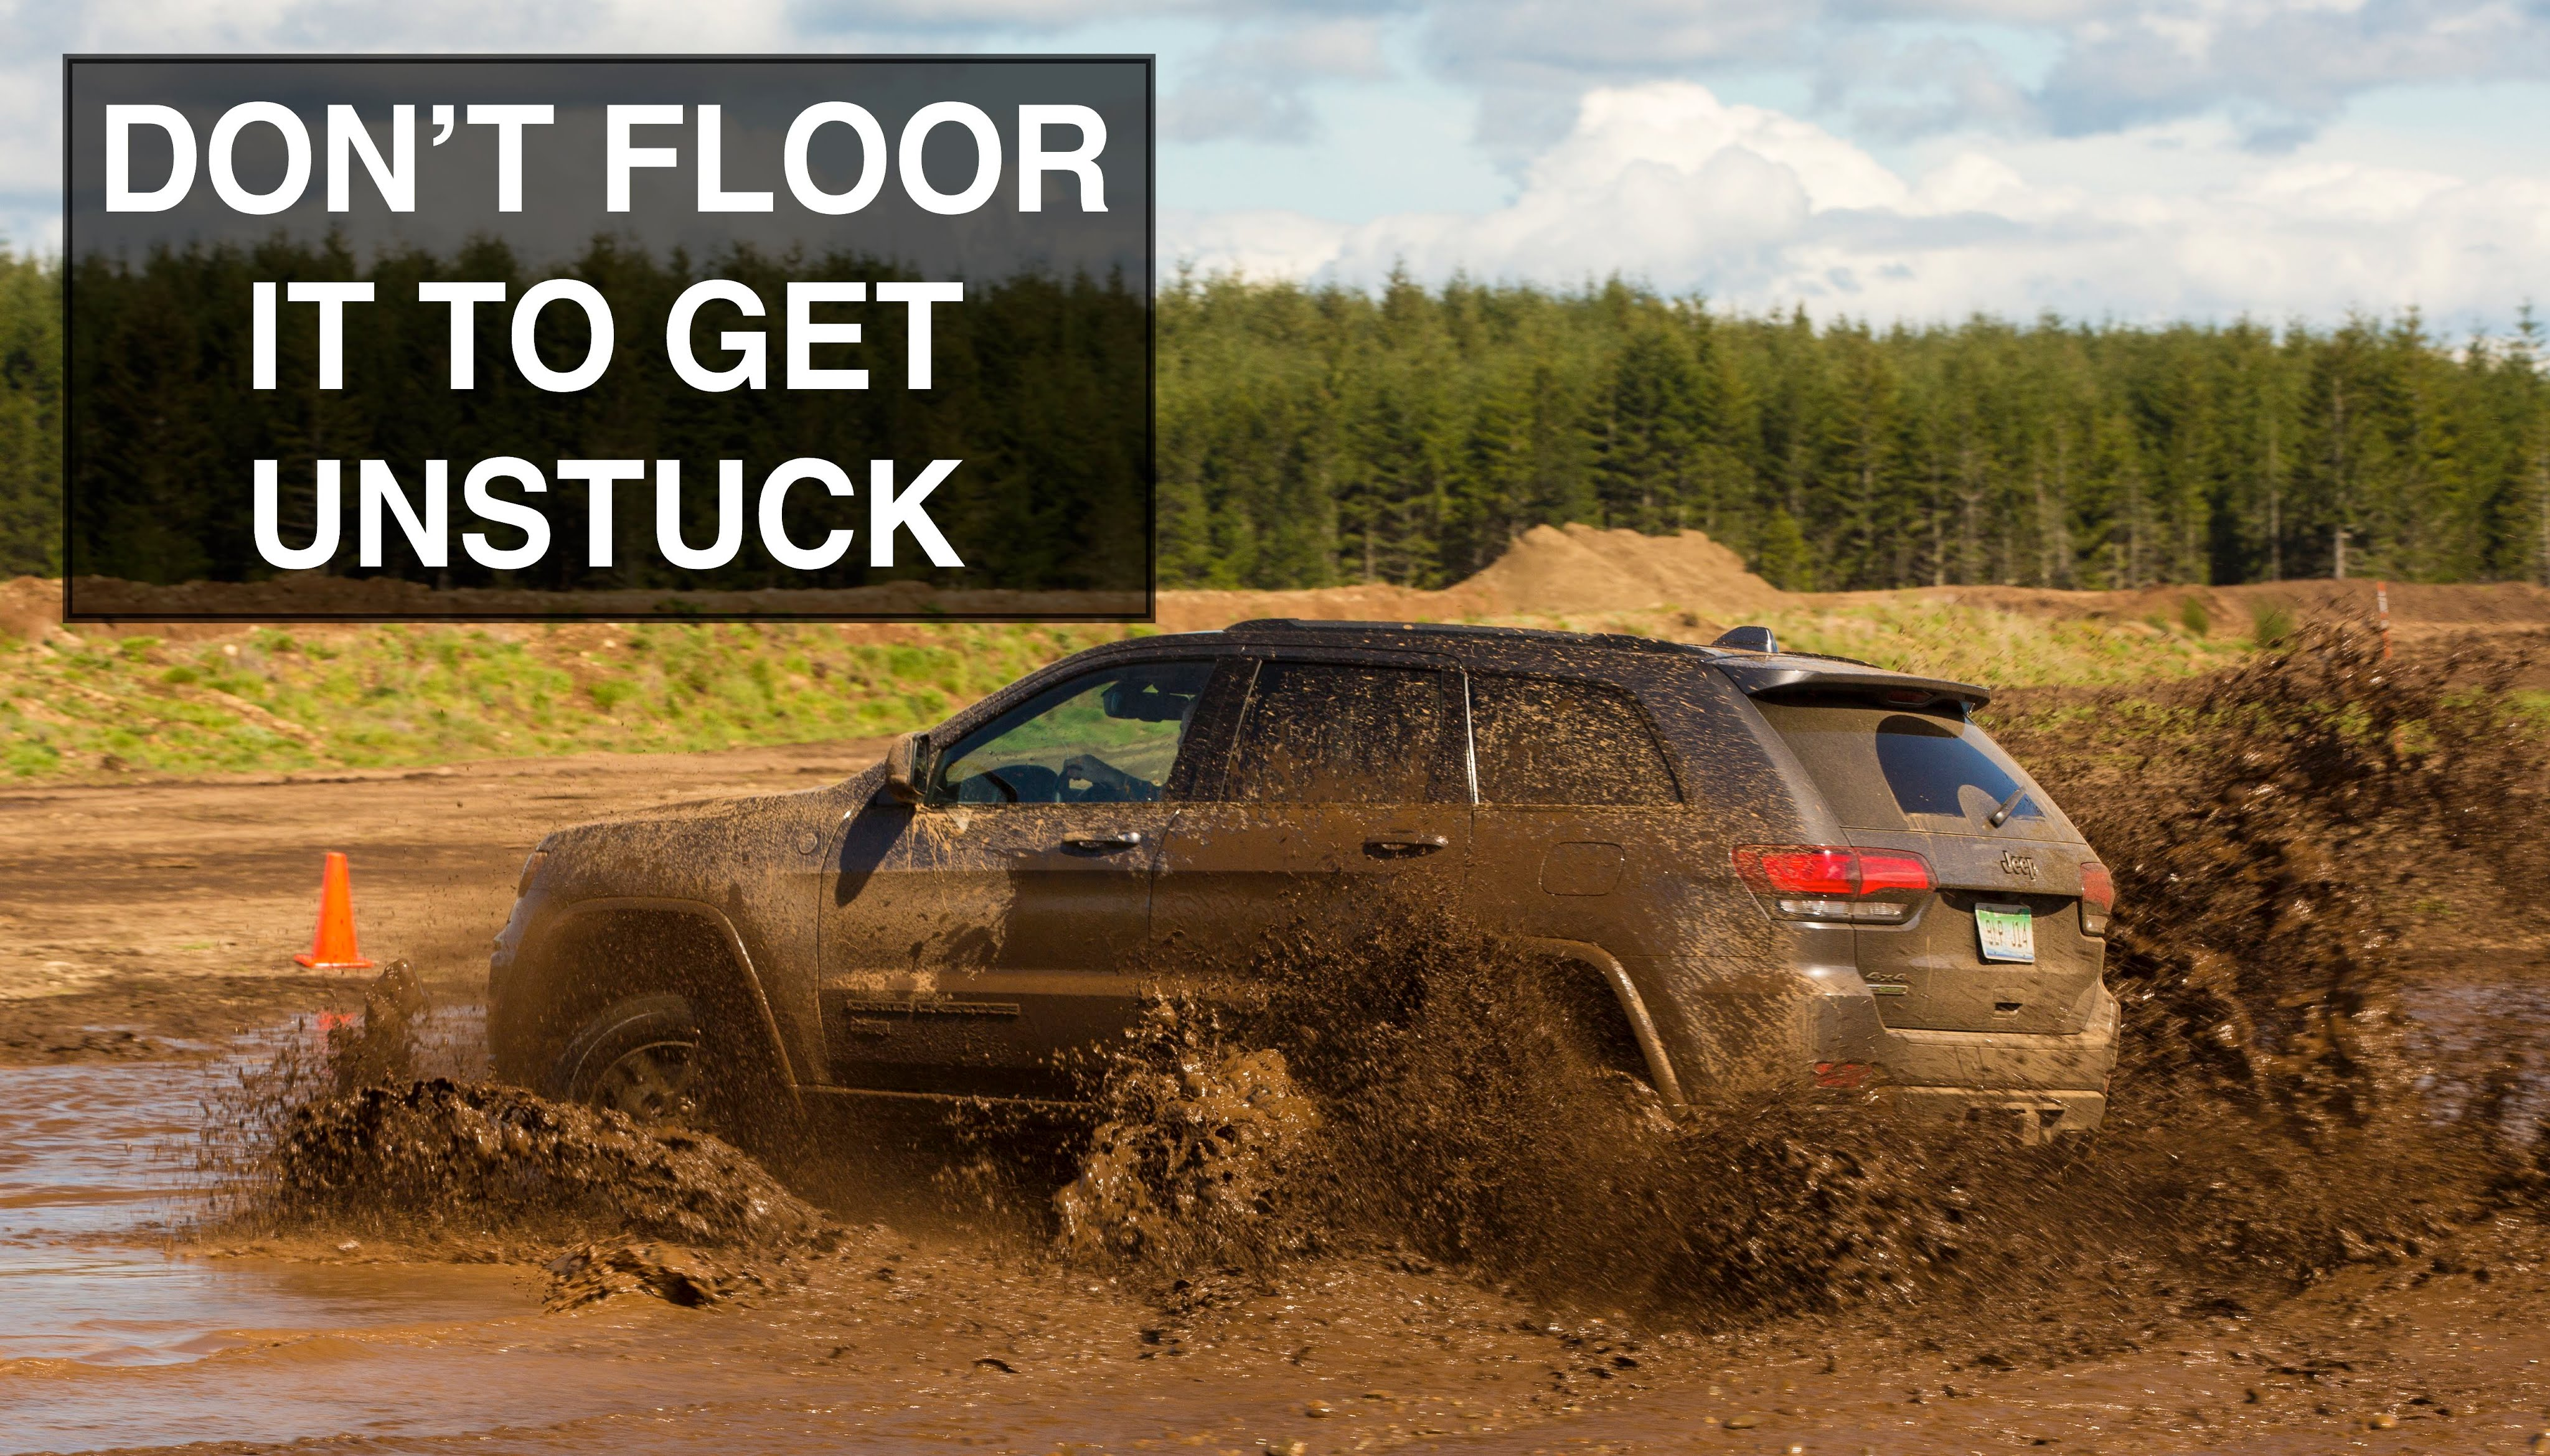 5 Things You Should Never Do In A 4X4 Or 4WD Vehicle